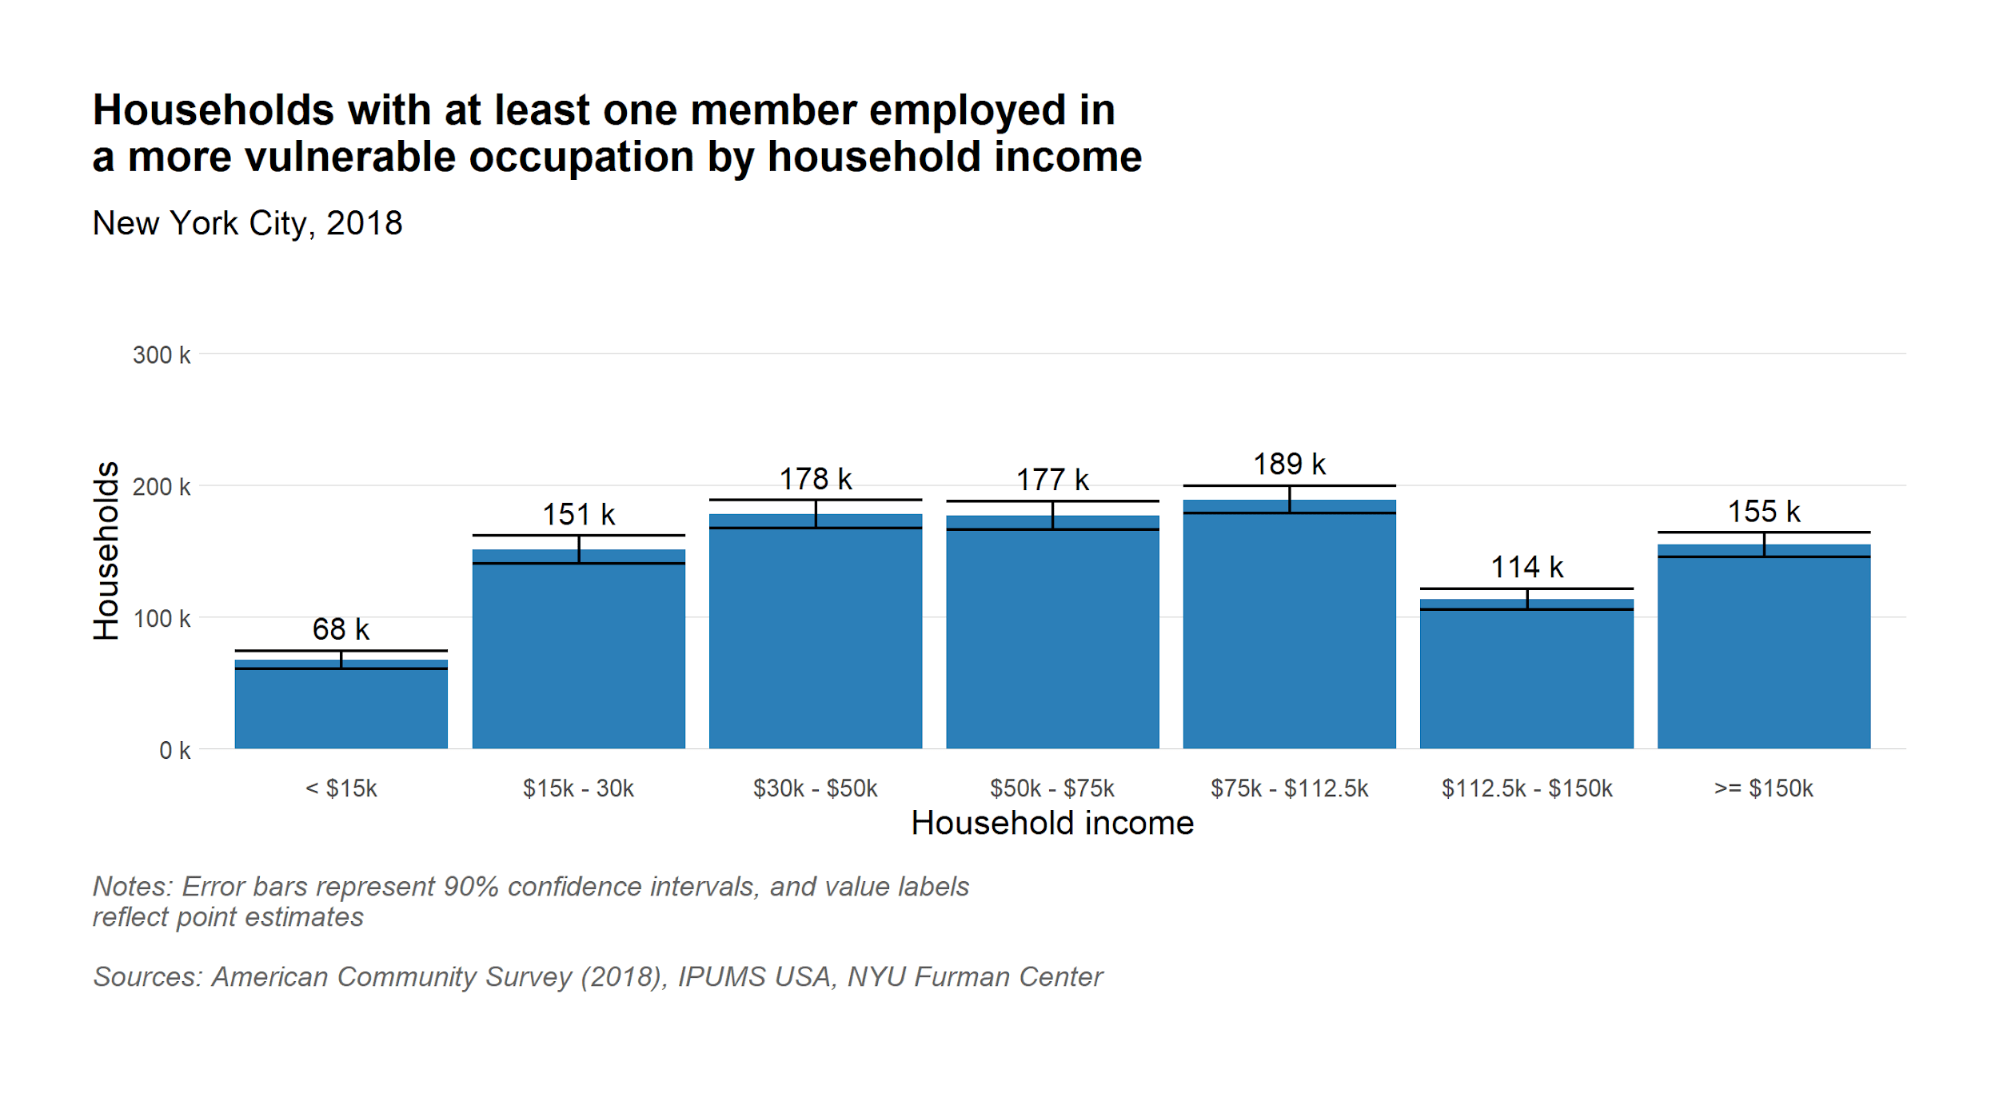 Number of households with at least one member in vulnerable occupation by household income